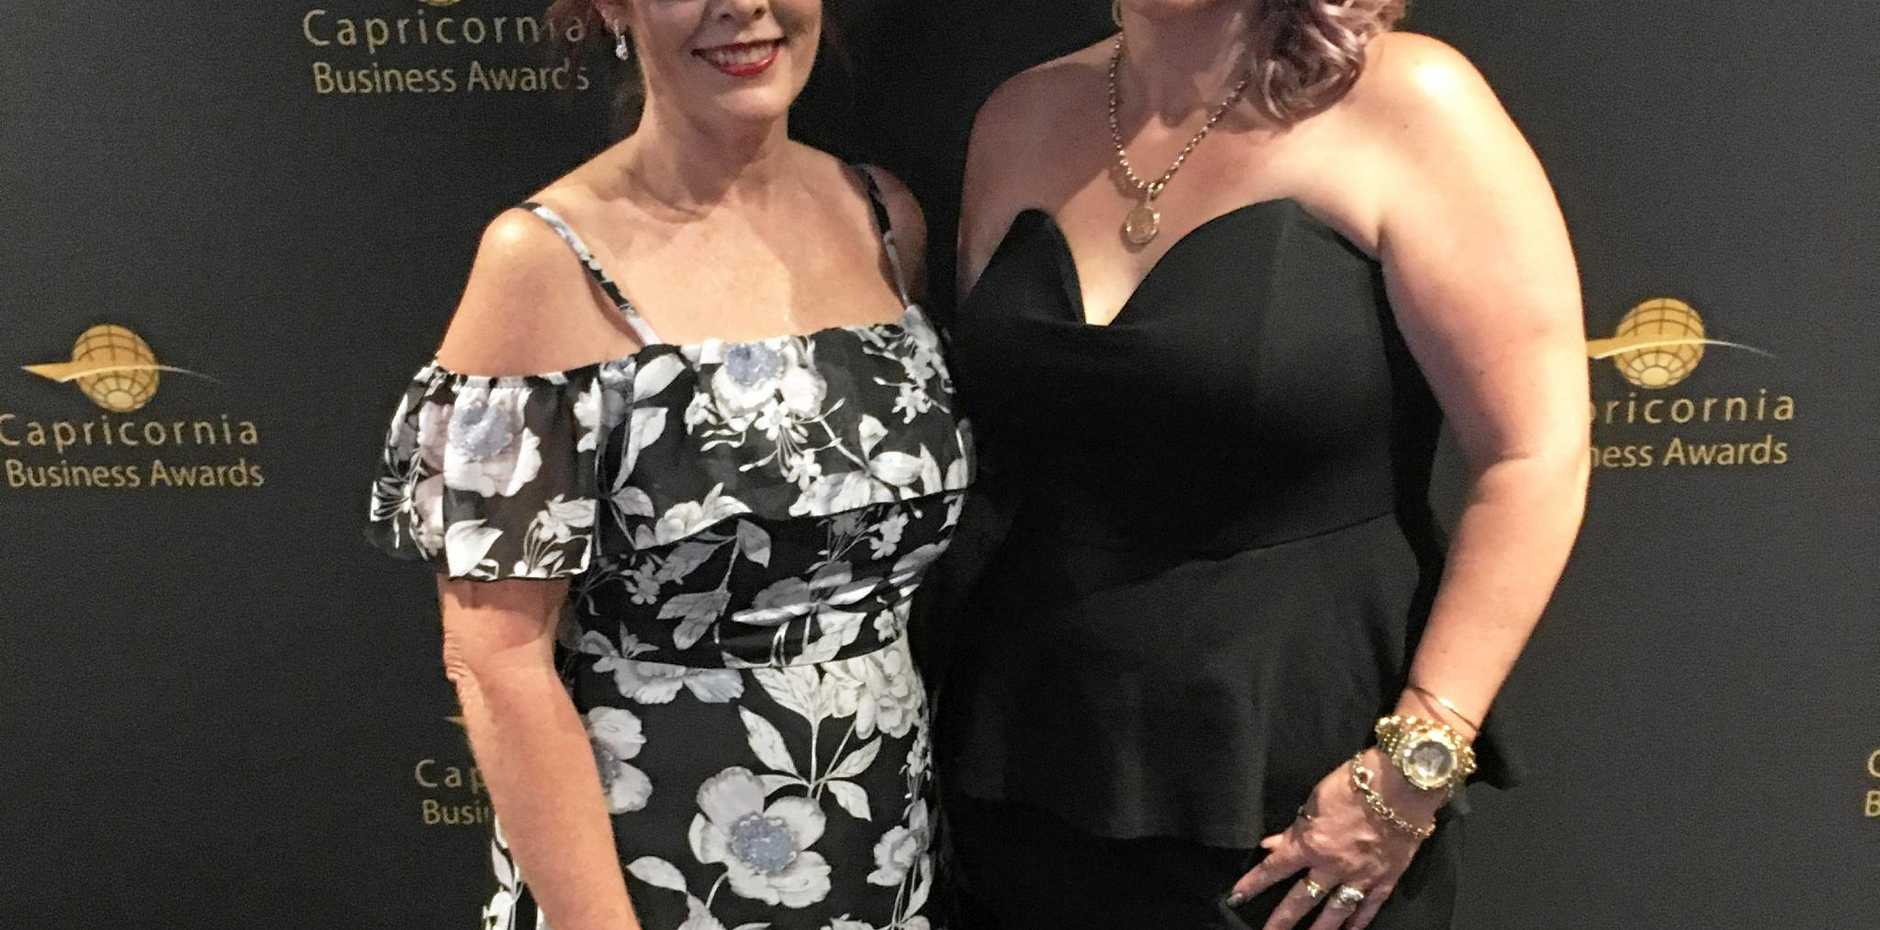 Capricornia Business Awards 2016 Best Business of the Year award winners Kathy McCosker and Hayley Riley of Headstart Salon Hair, Beauty, Nails.